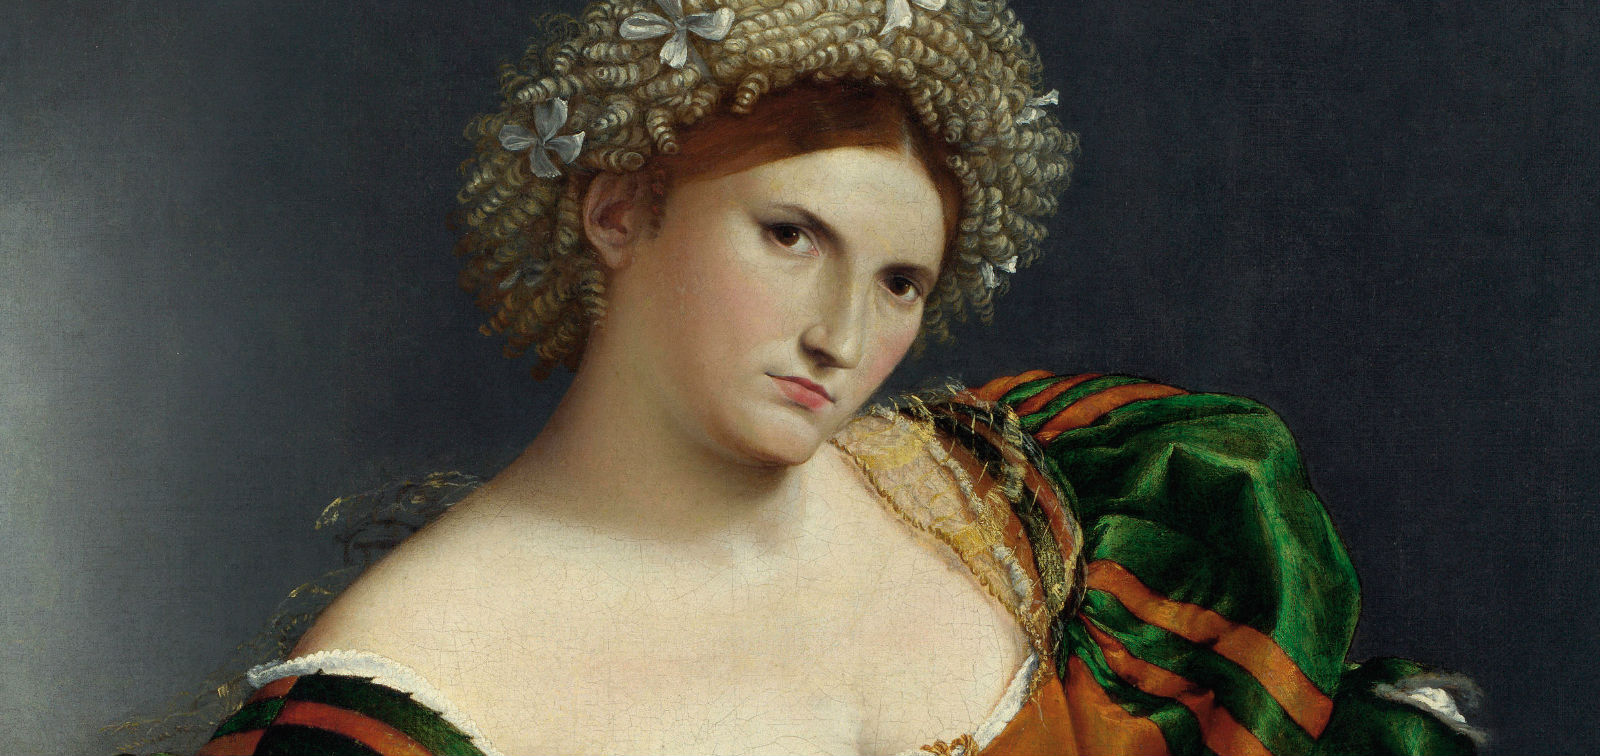 Lorenzo Lotto. Portraits